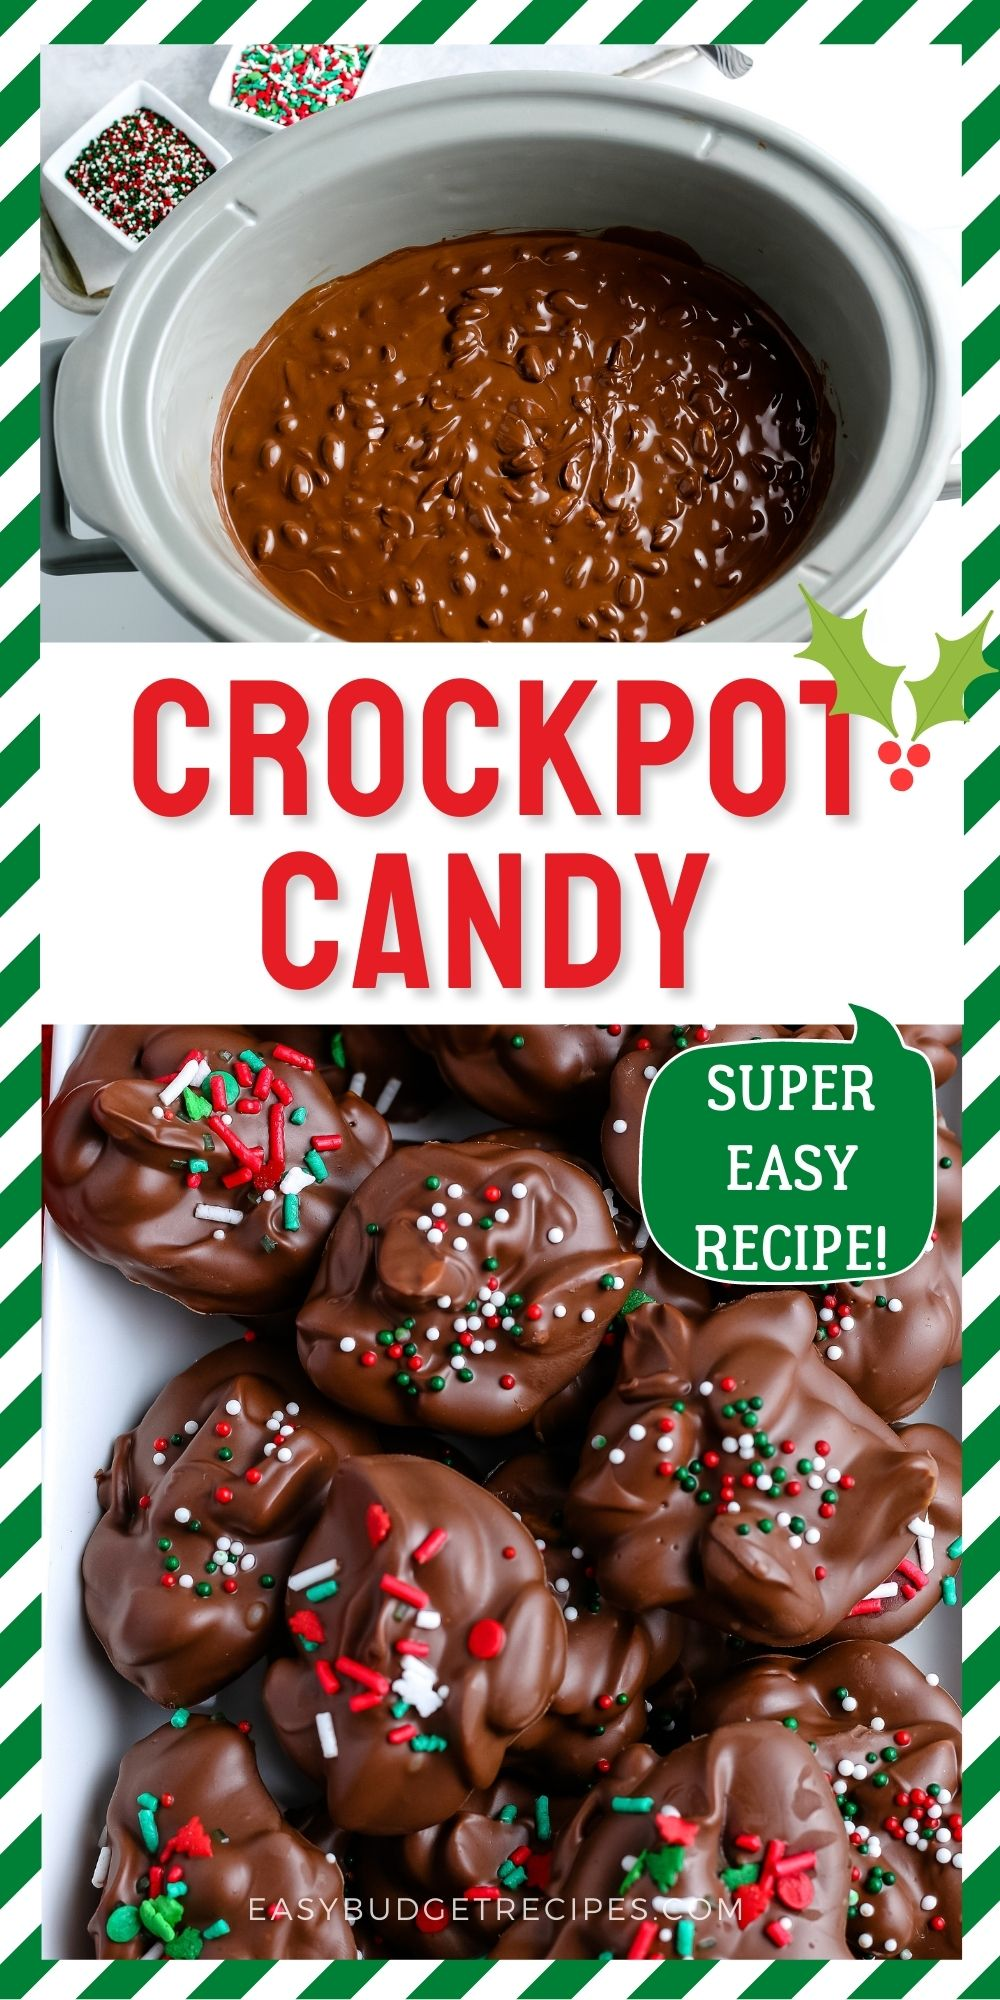 Crockpot Candy is an easy recipe that is perfect for holiday cookie trays and potlucks. Grab the kids because they'll love making this Christmas candy! via @easybudgetrecipes